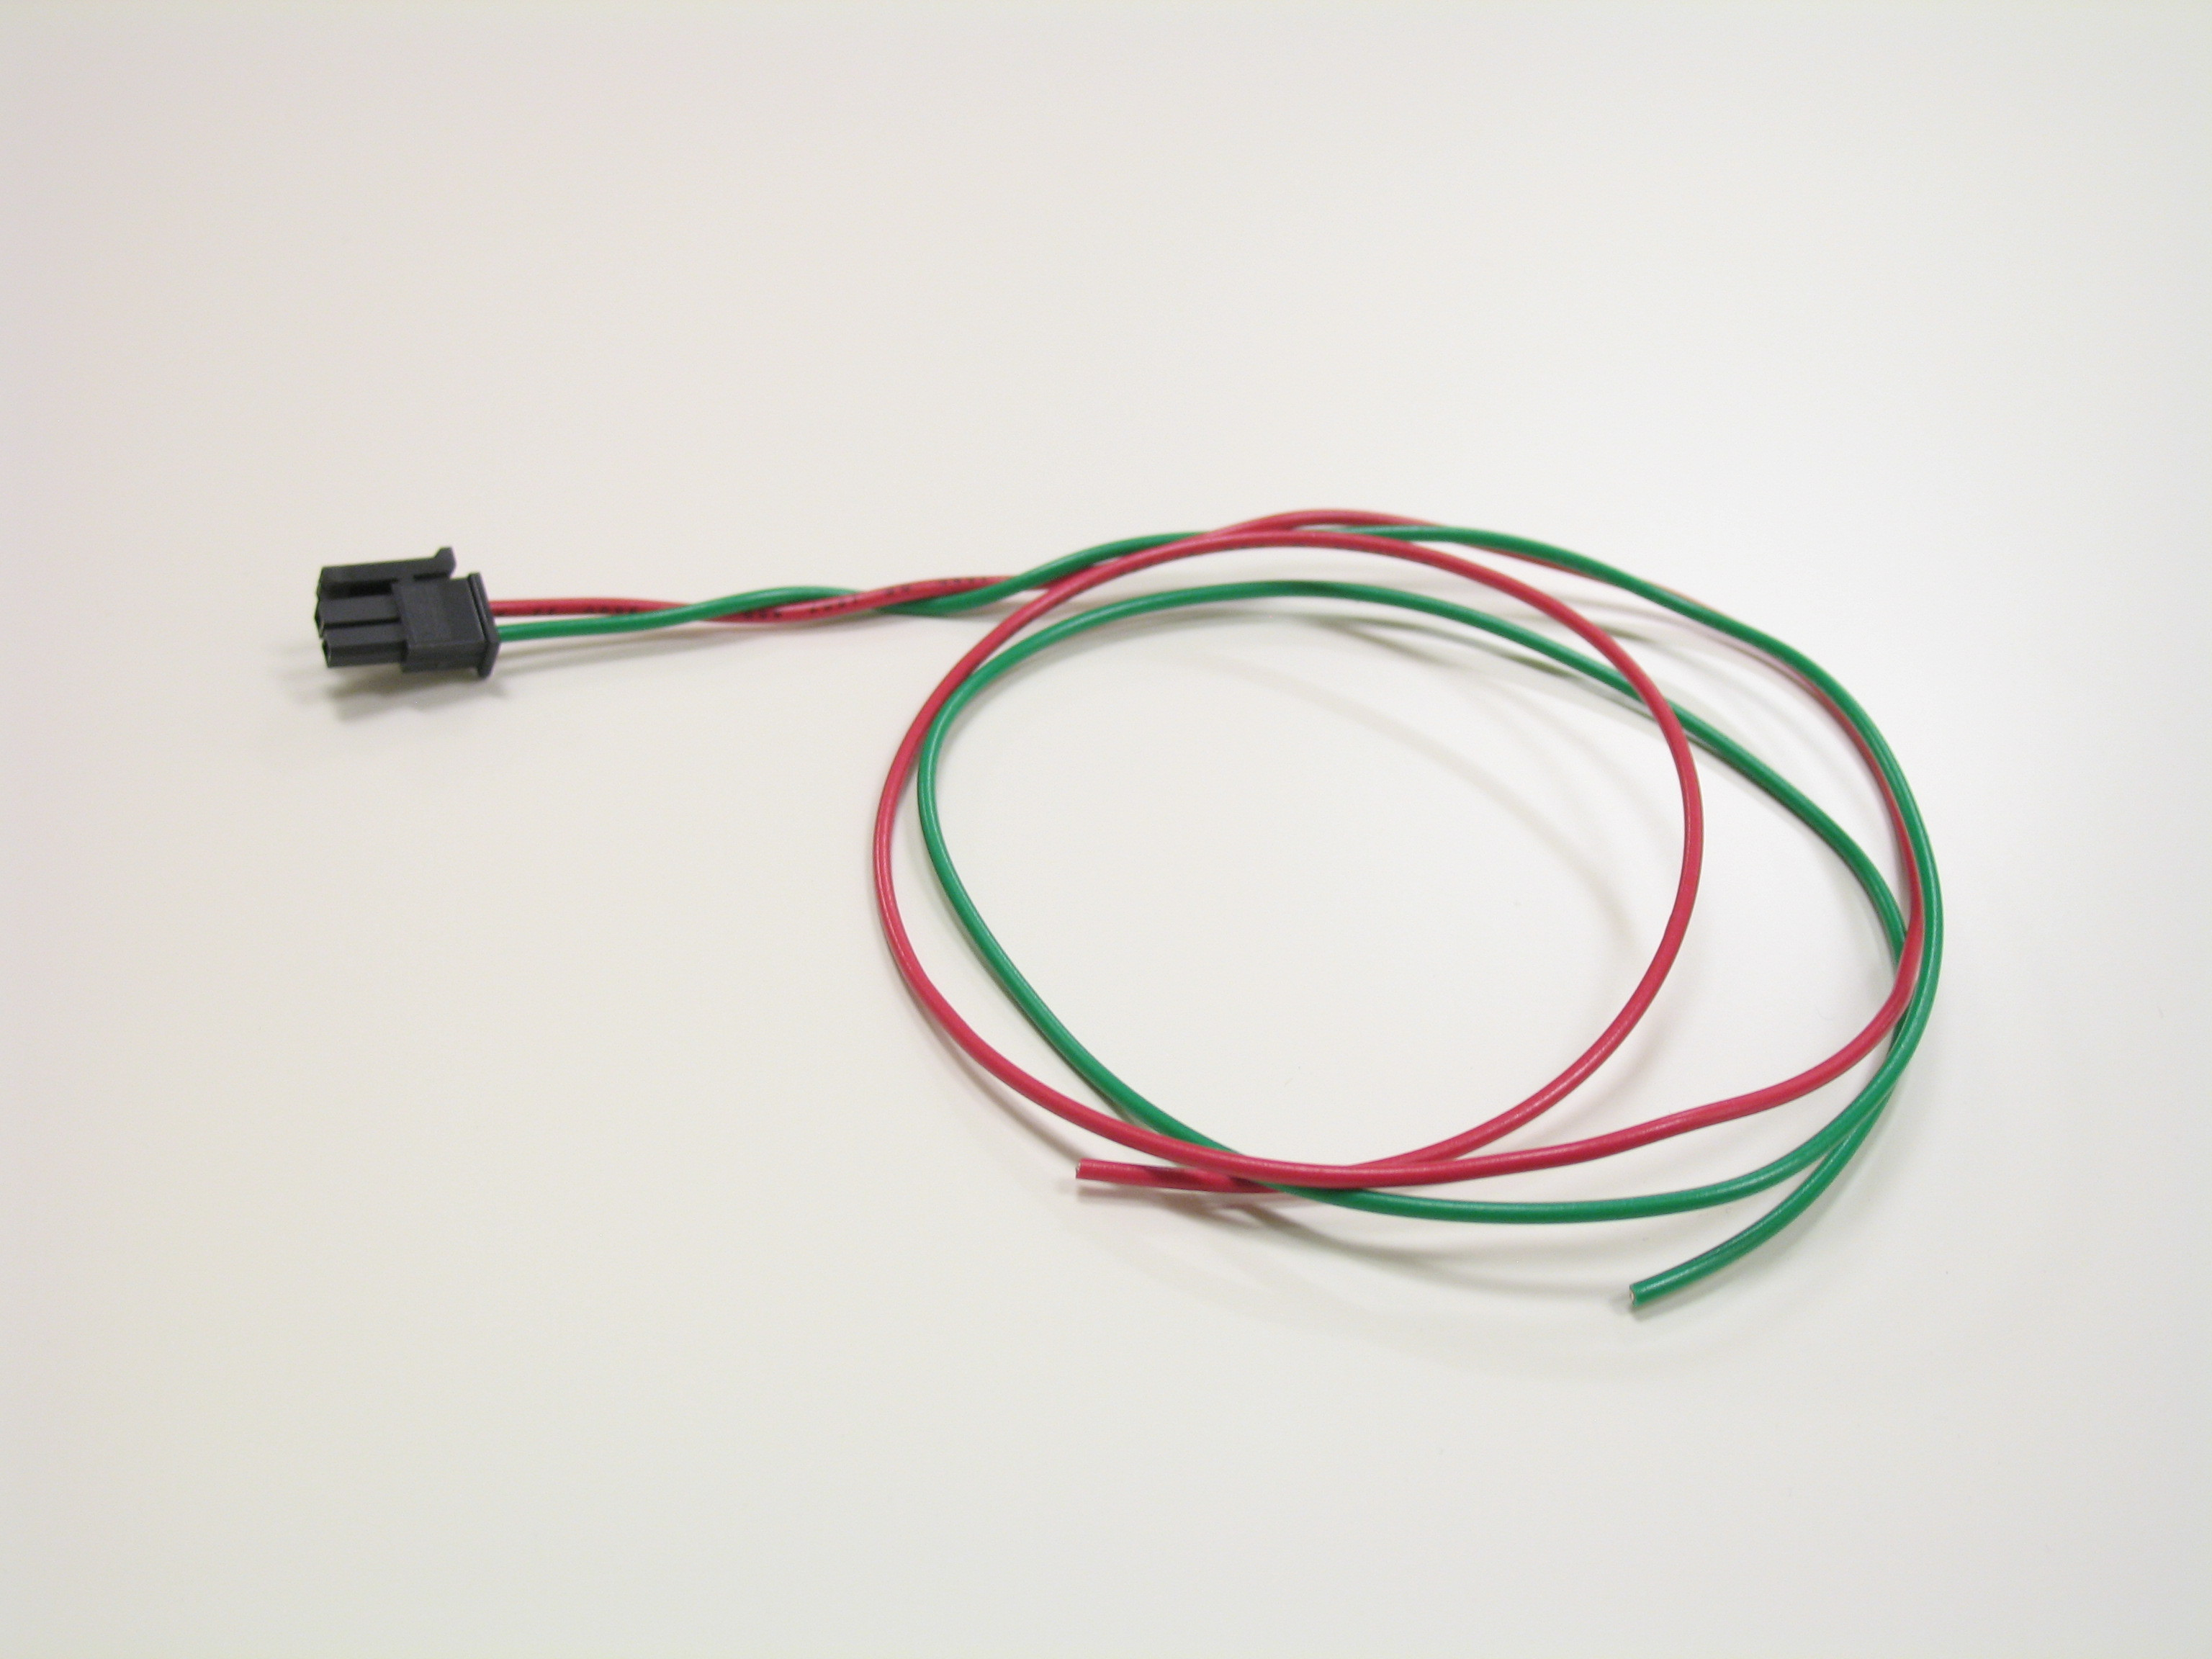 Create Cables for the TurtleBot PowerBoard